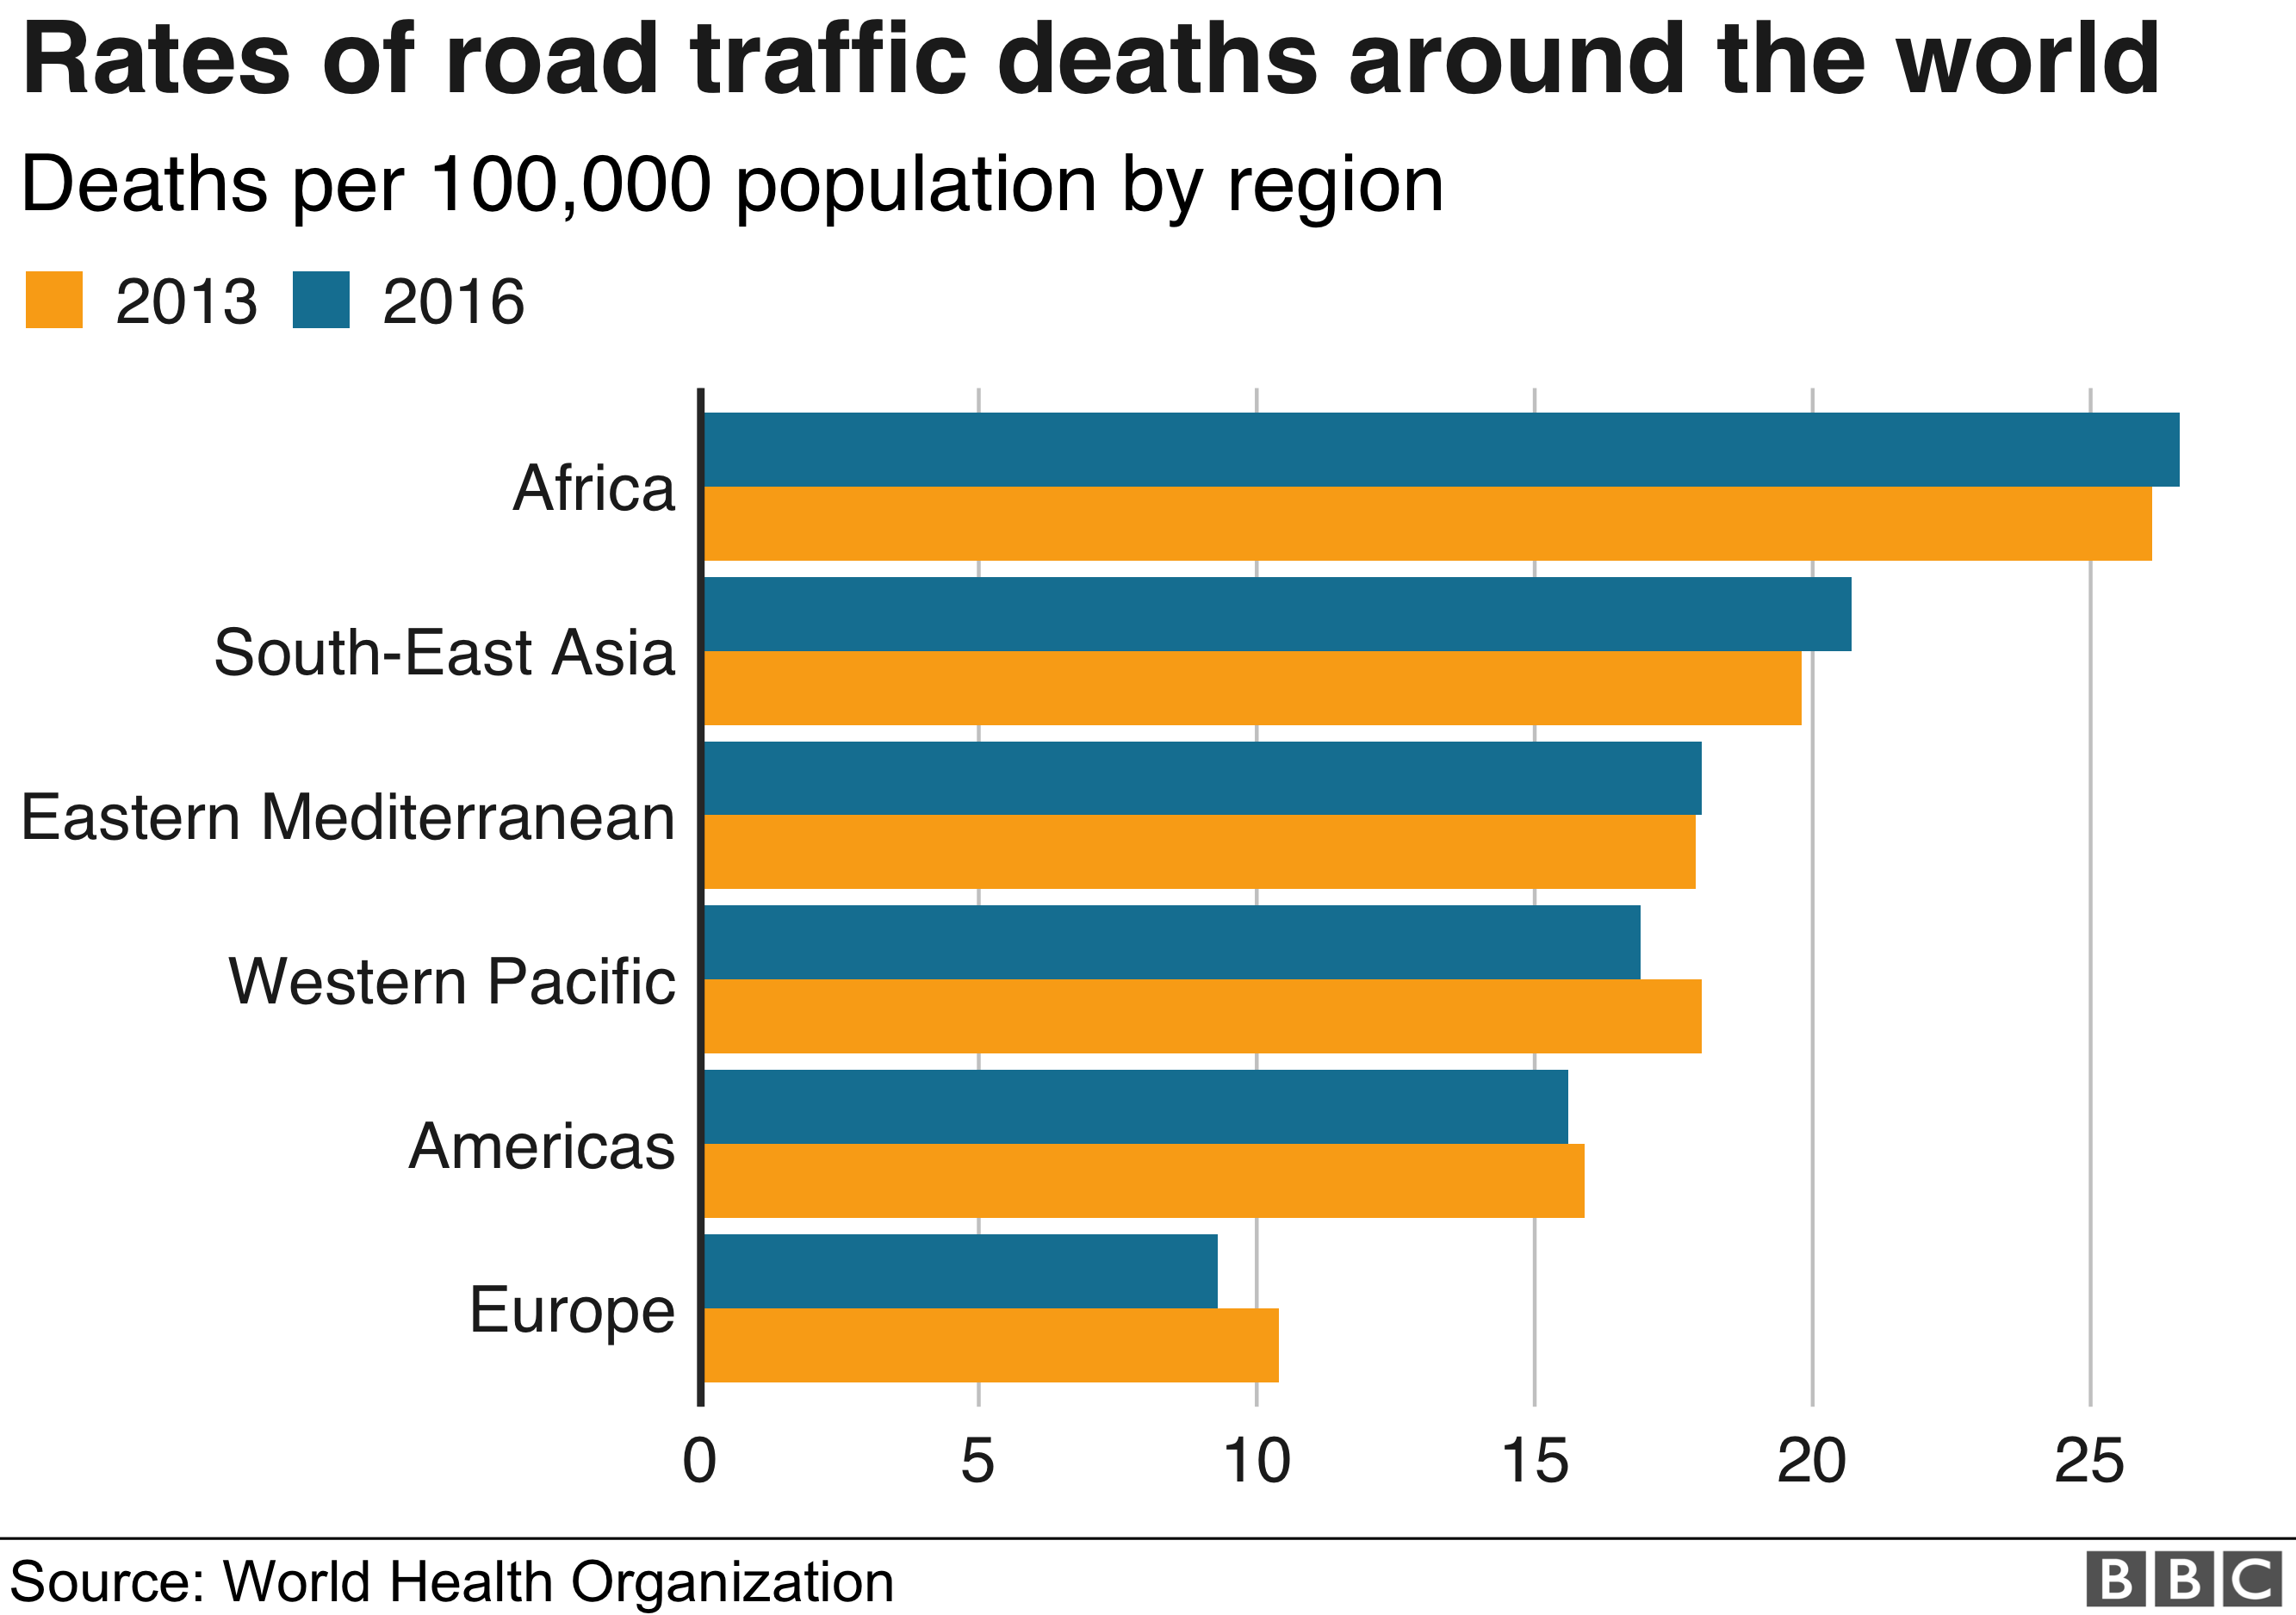 Graphic showing road traffic death rates around the world